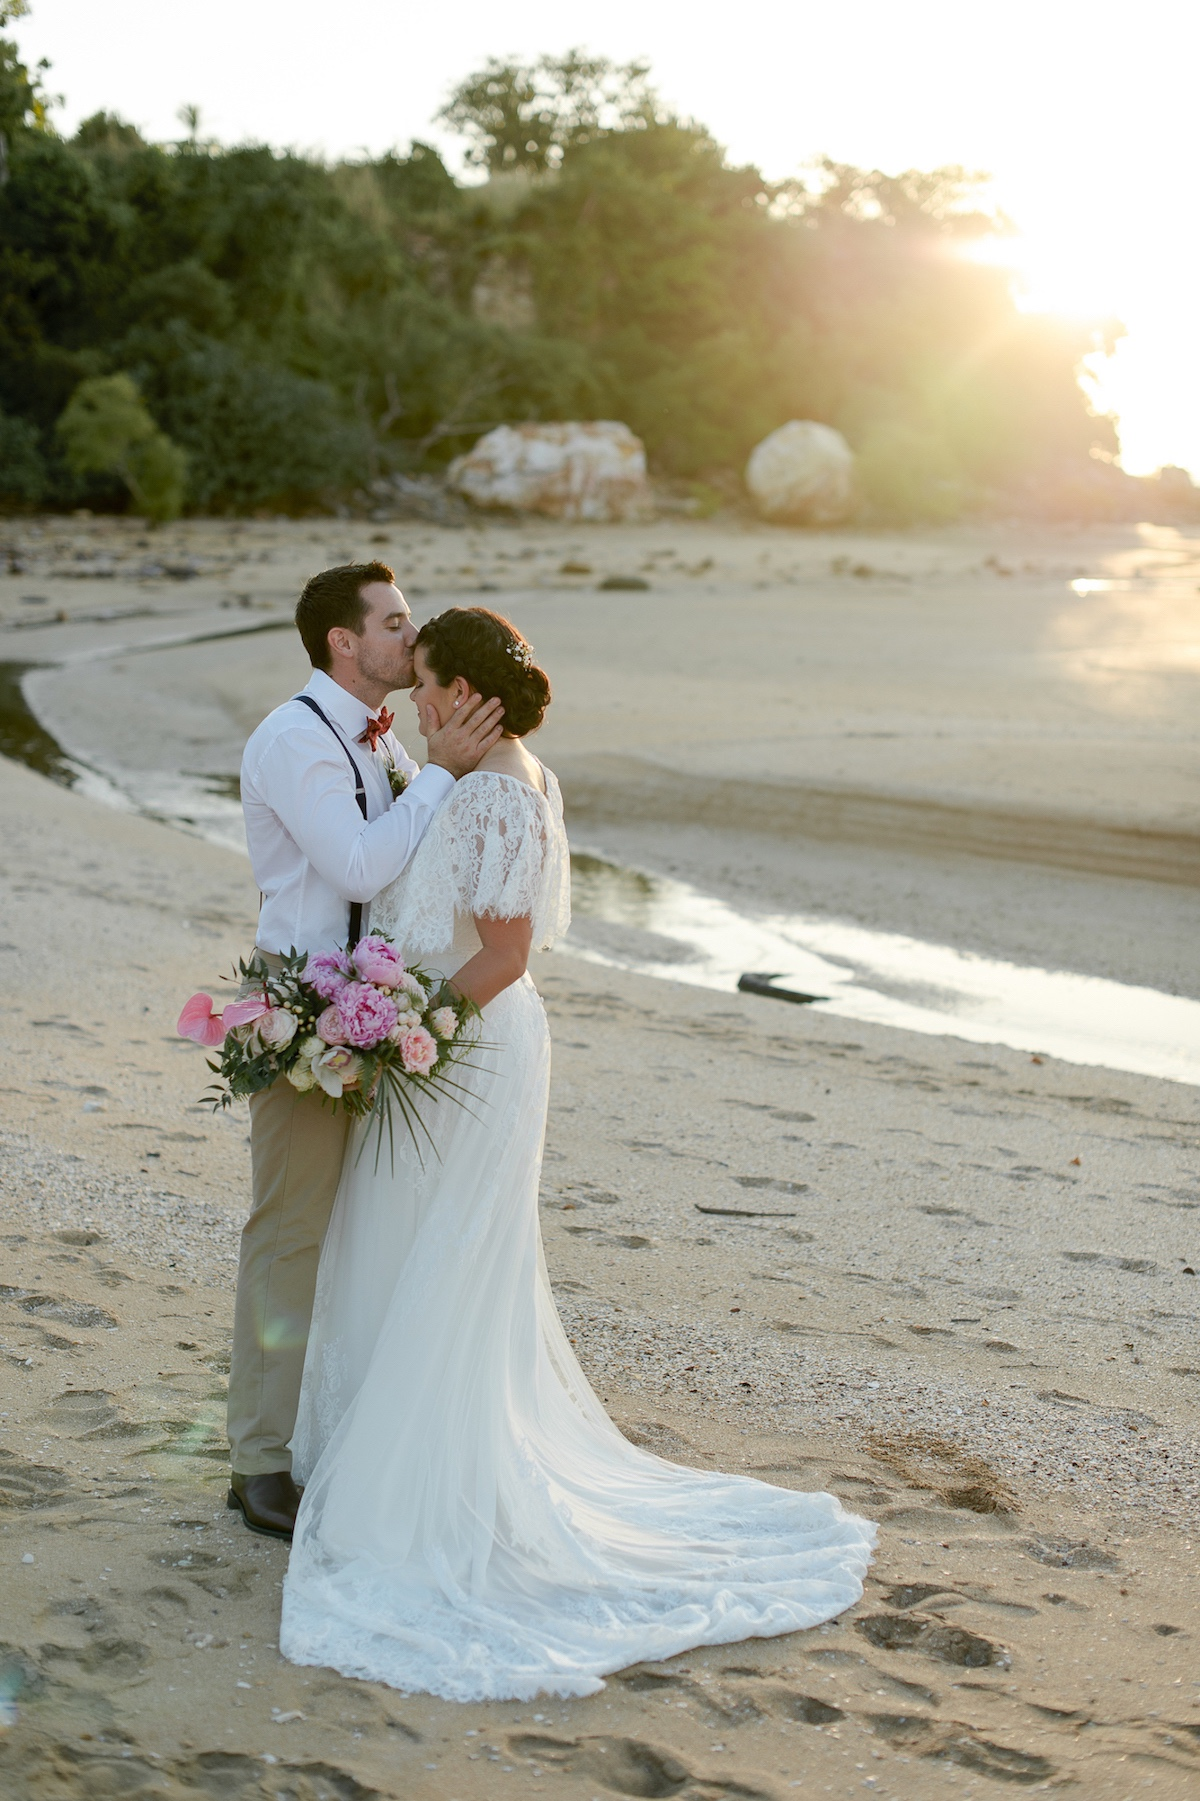 Sunset wedding on the Mindel Beach, Darwin, tropical flowers from local florist, Beija Flor.